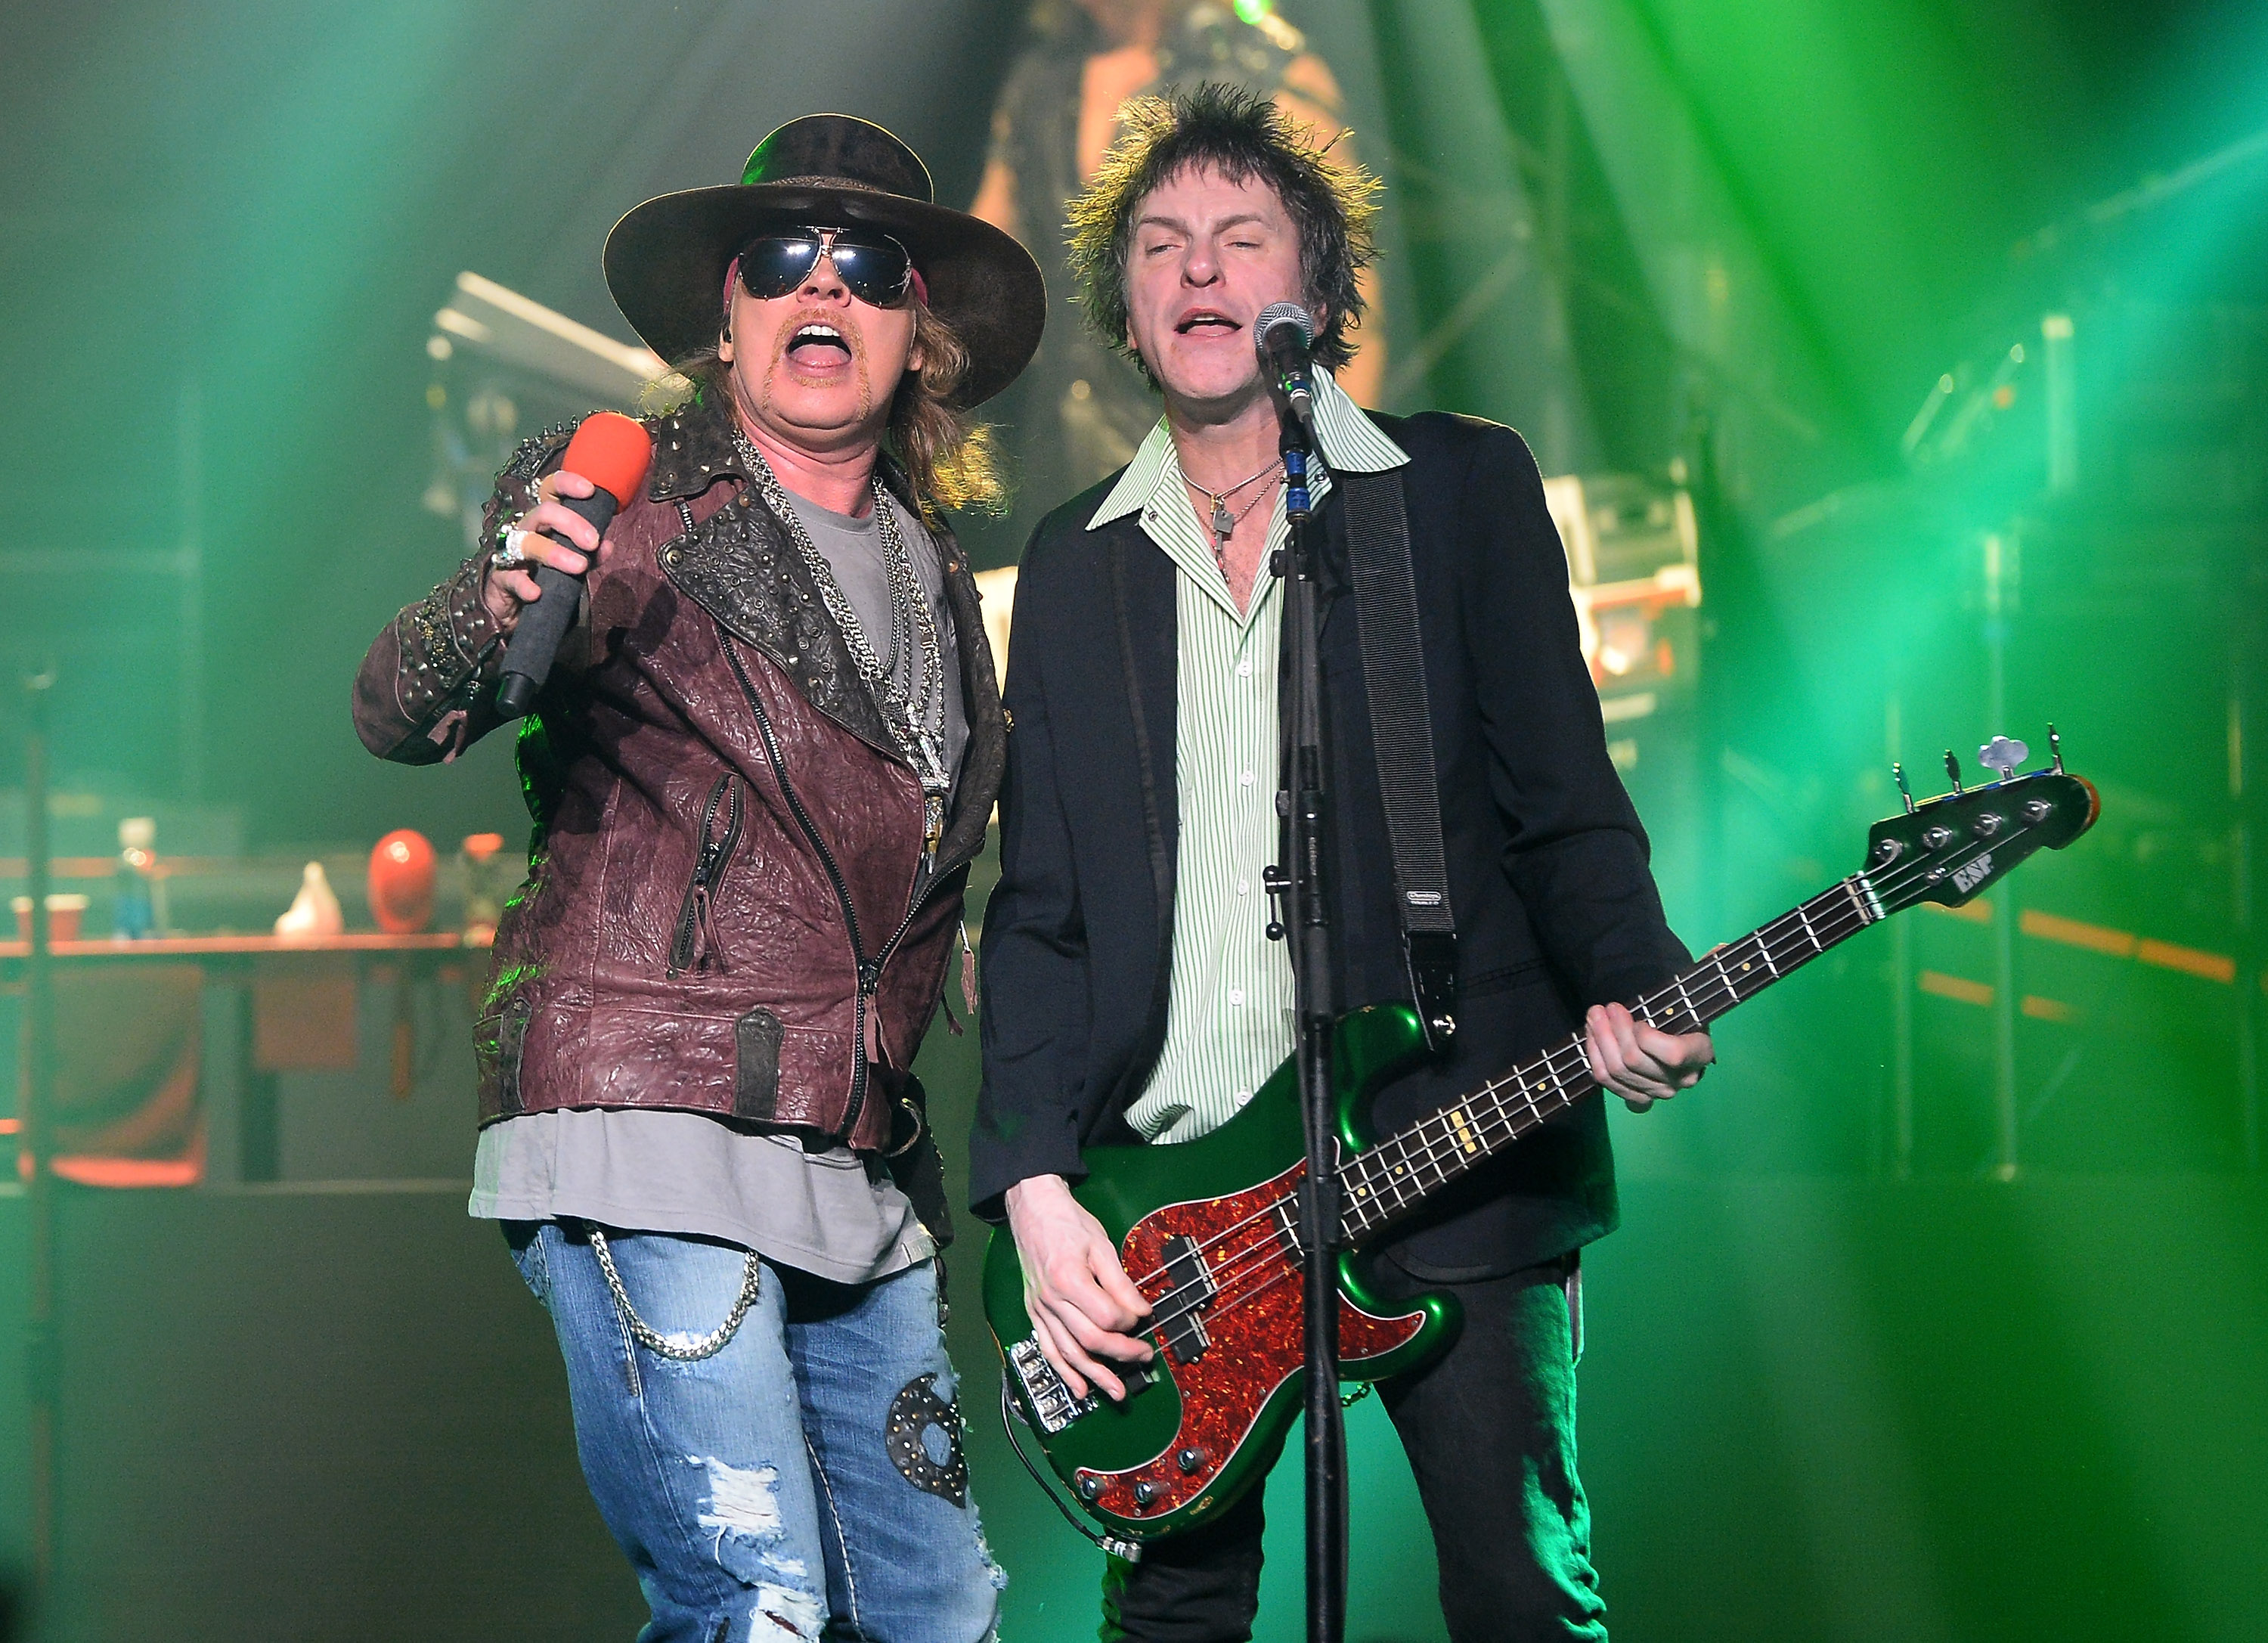 Axl Rose and Tommy Stinson playing with Guns N' Roses. (Photo by Ethan Miller/Getty Images)